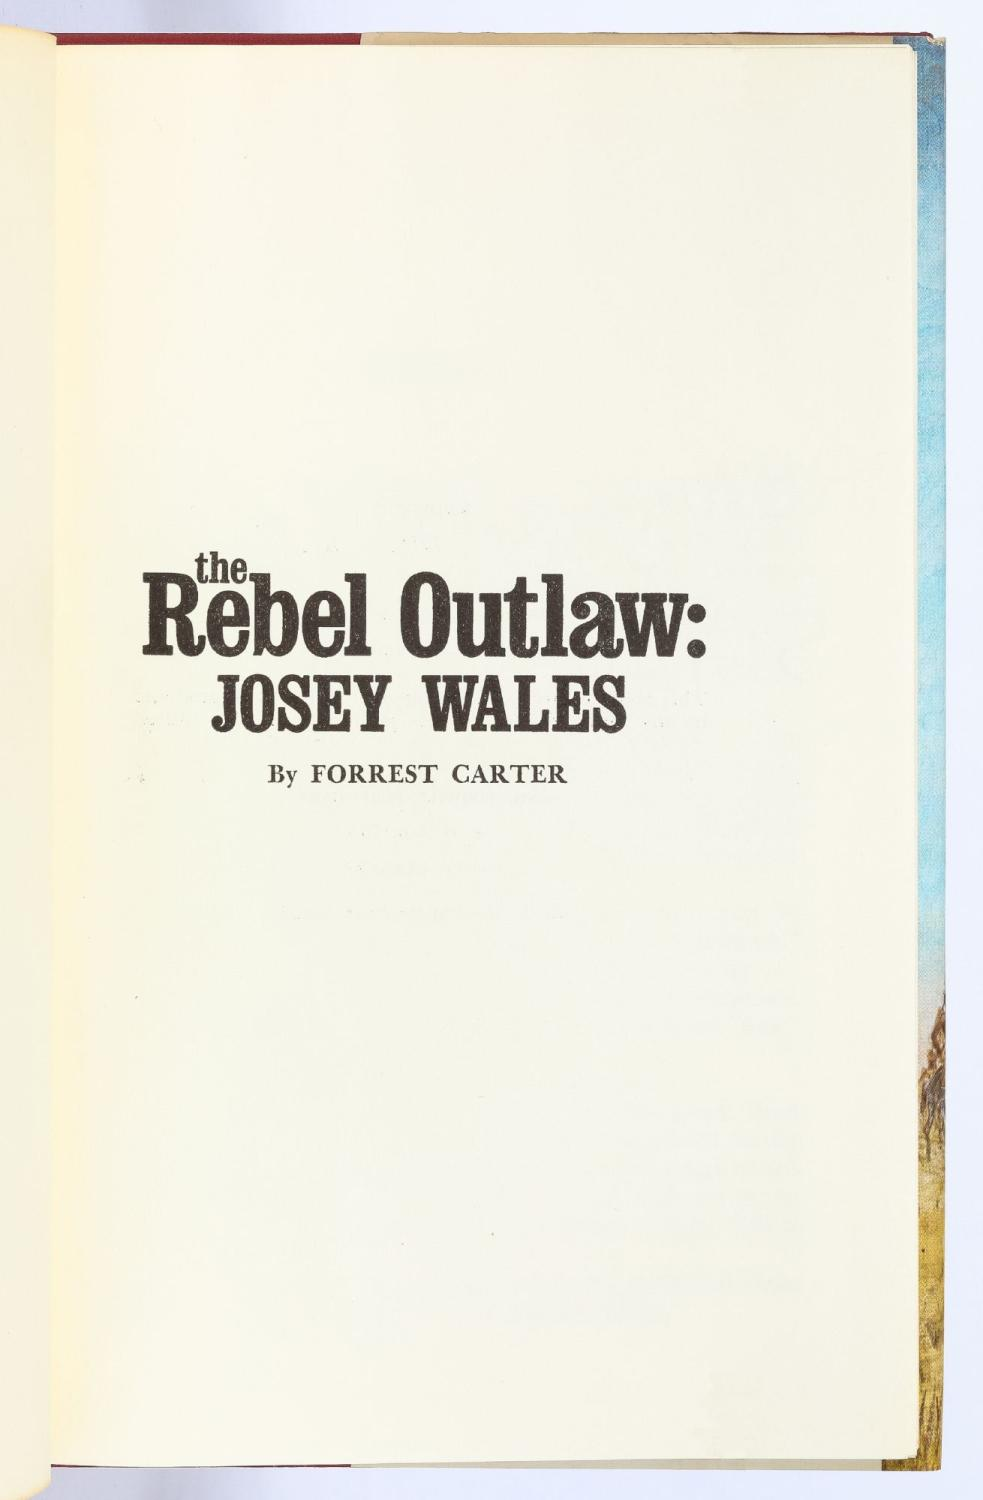 The Rebel Outlaw: Josey Wales